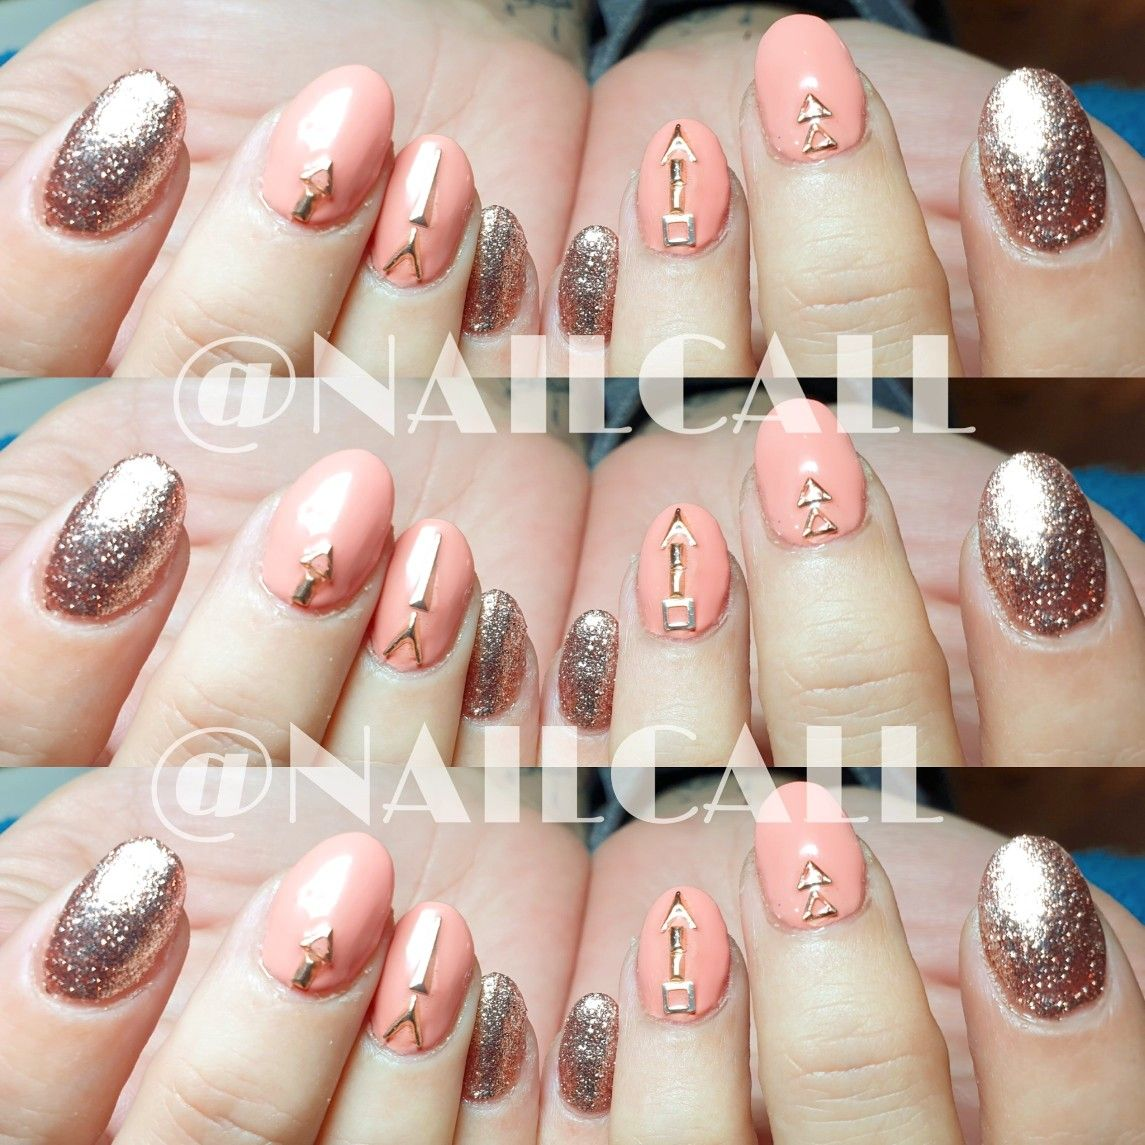 A little Rose Gold #naillove for this #stunningset if #sculptedacrylicnails with a #bitofbling to set them off  #gorgeouscolours from @thegelbottleaus #thegelbottleaus #gelbottlerosegold   #nailcallstyle #nailcalloptions #naillove #livelovenails #creativenails #byappointment #nailfunk #nailjunkie #psiloveyou #newcastlenswart #pamperparty #mobilesalon